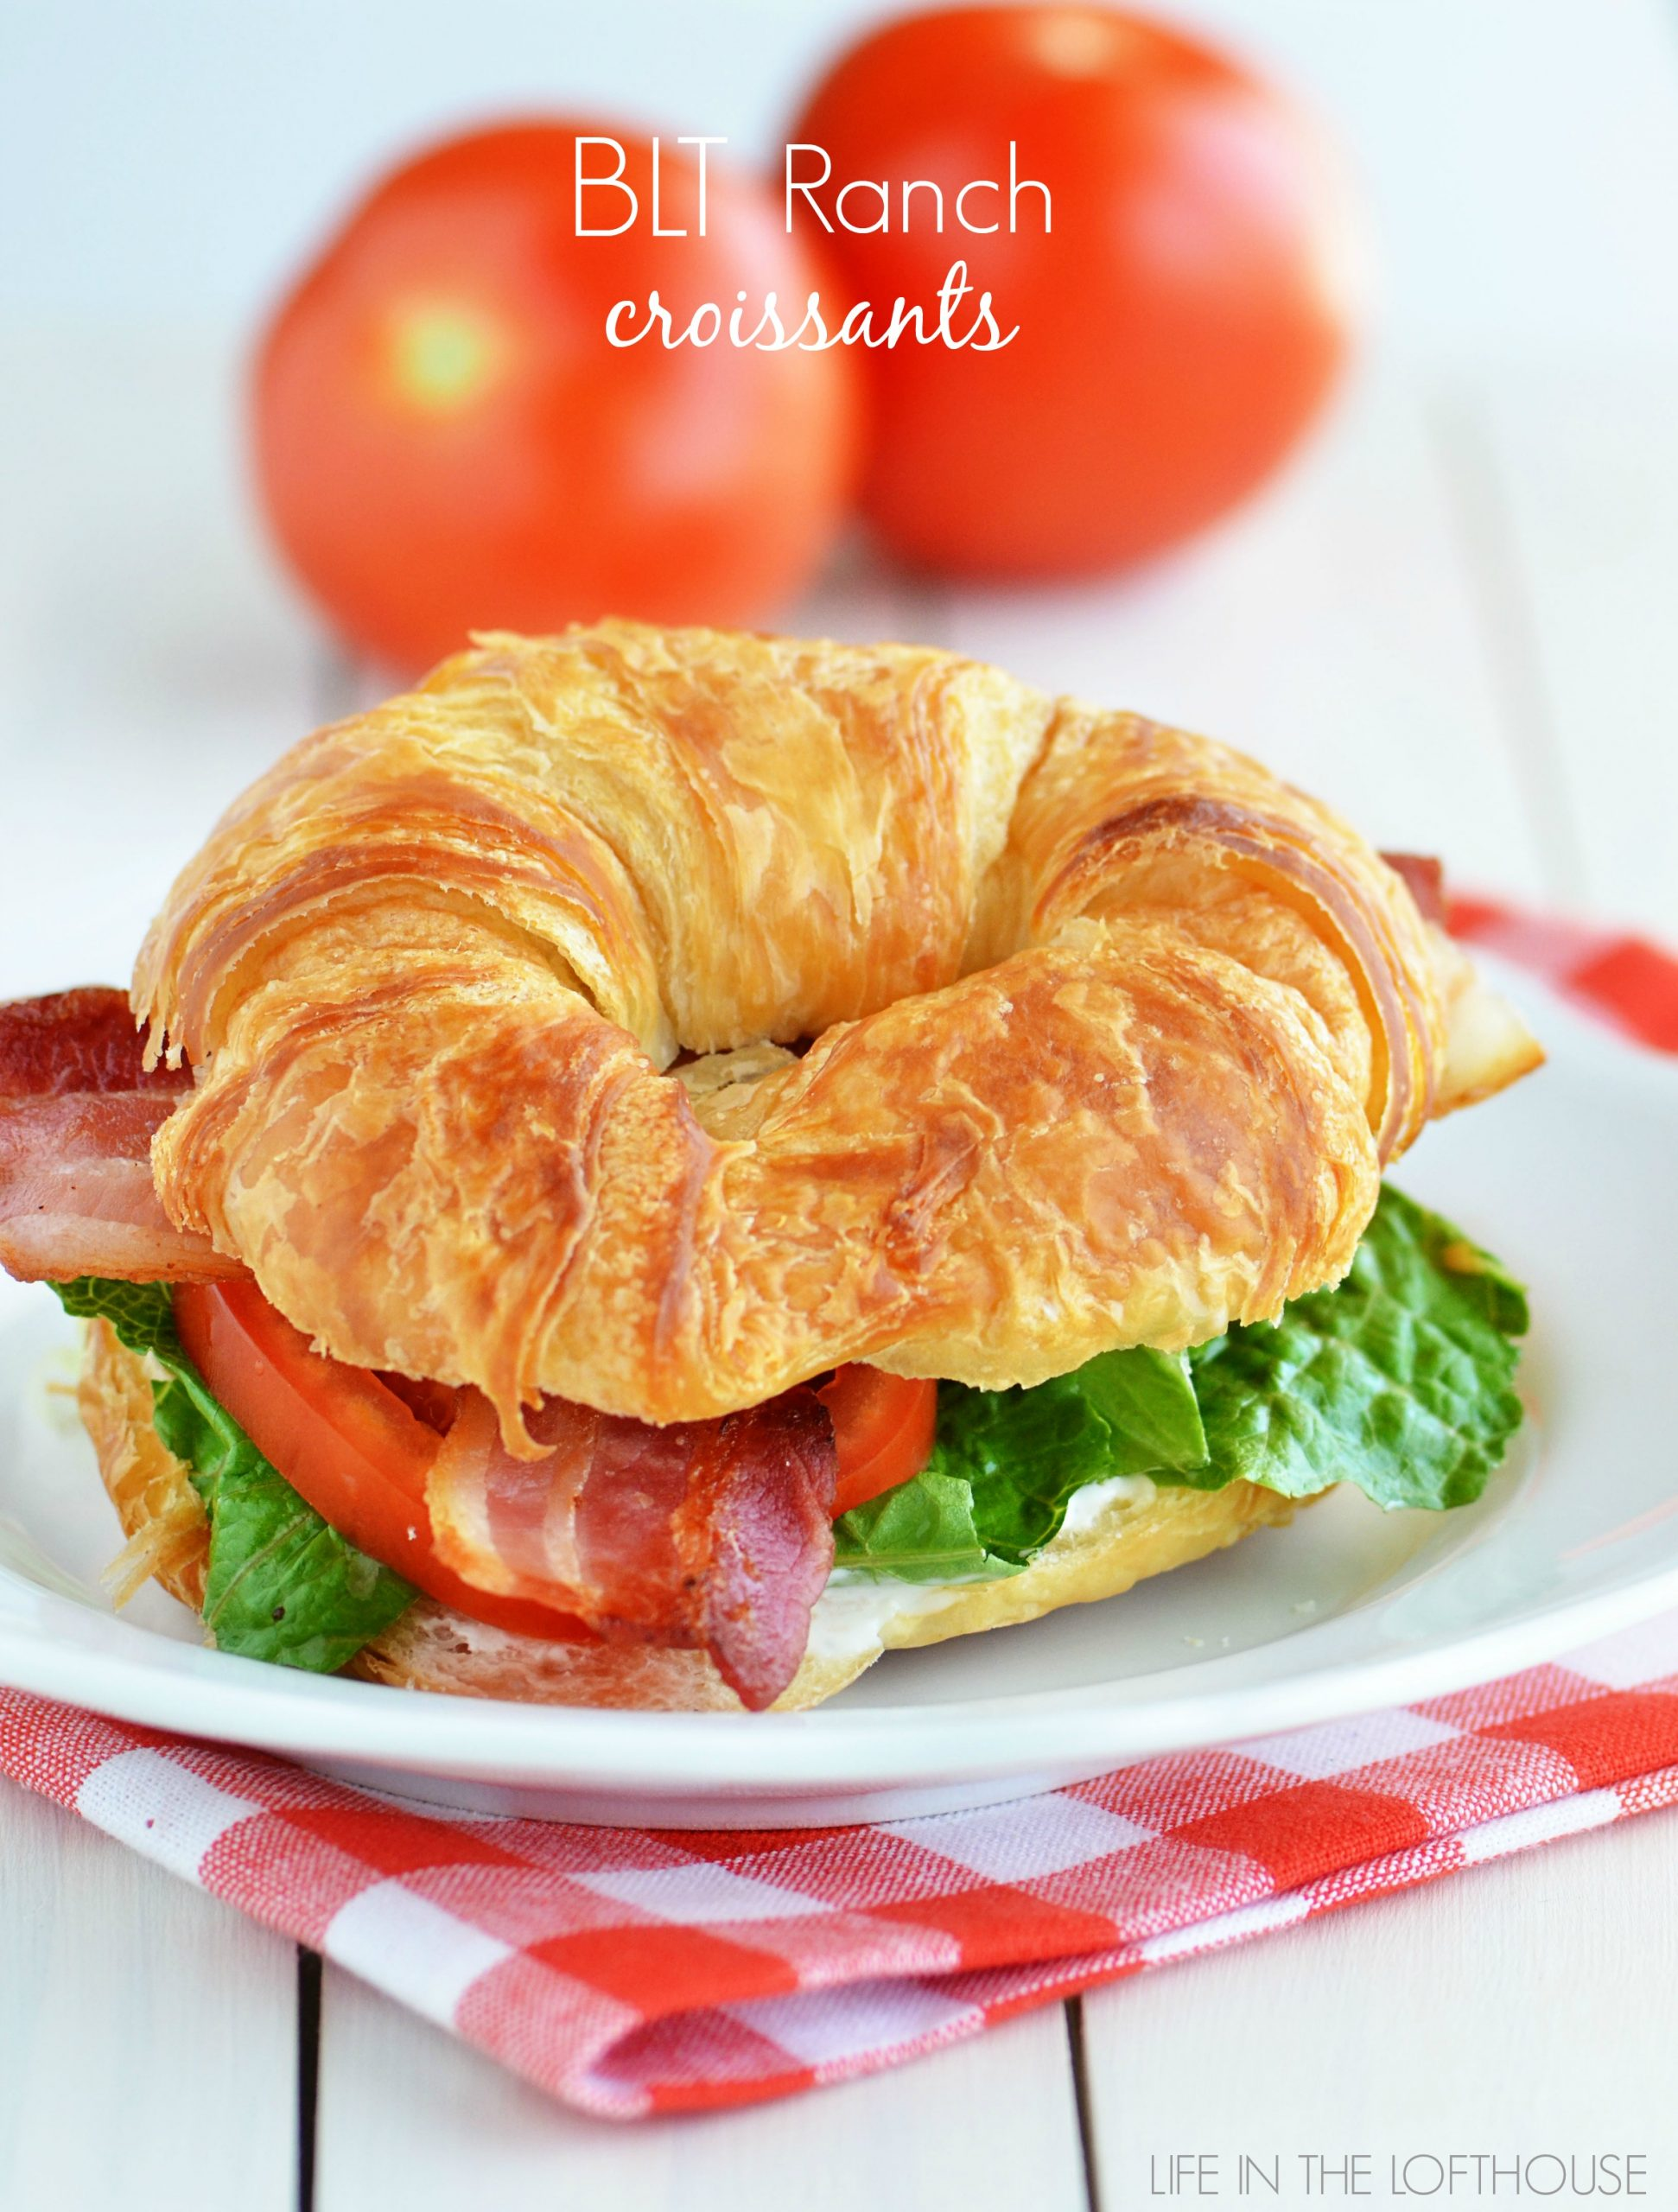 blt ranch croissants. Black Bedroom Furniture Sets. Home Design Ideas